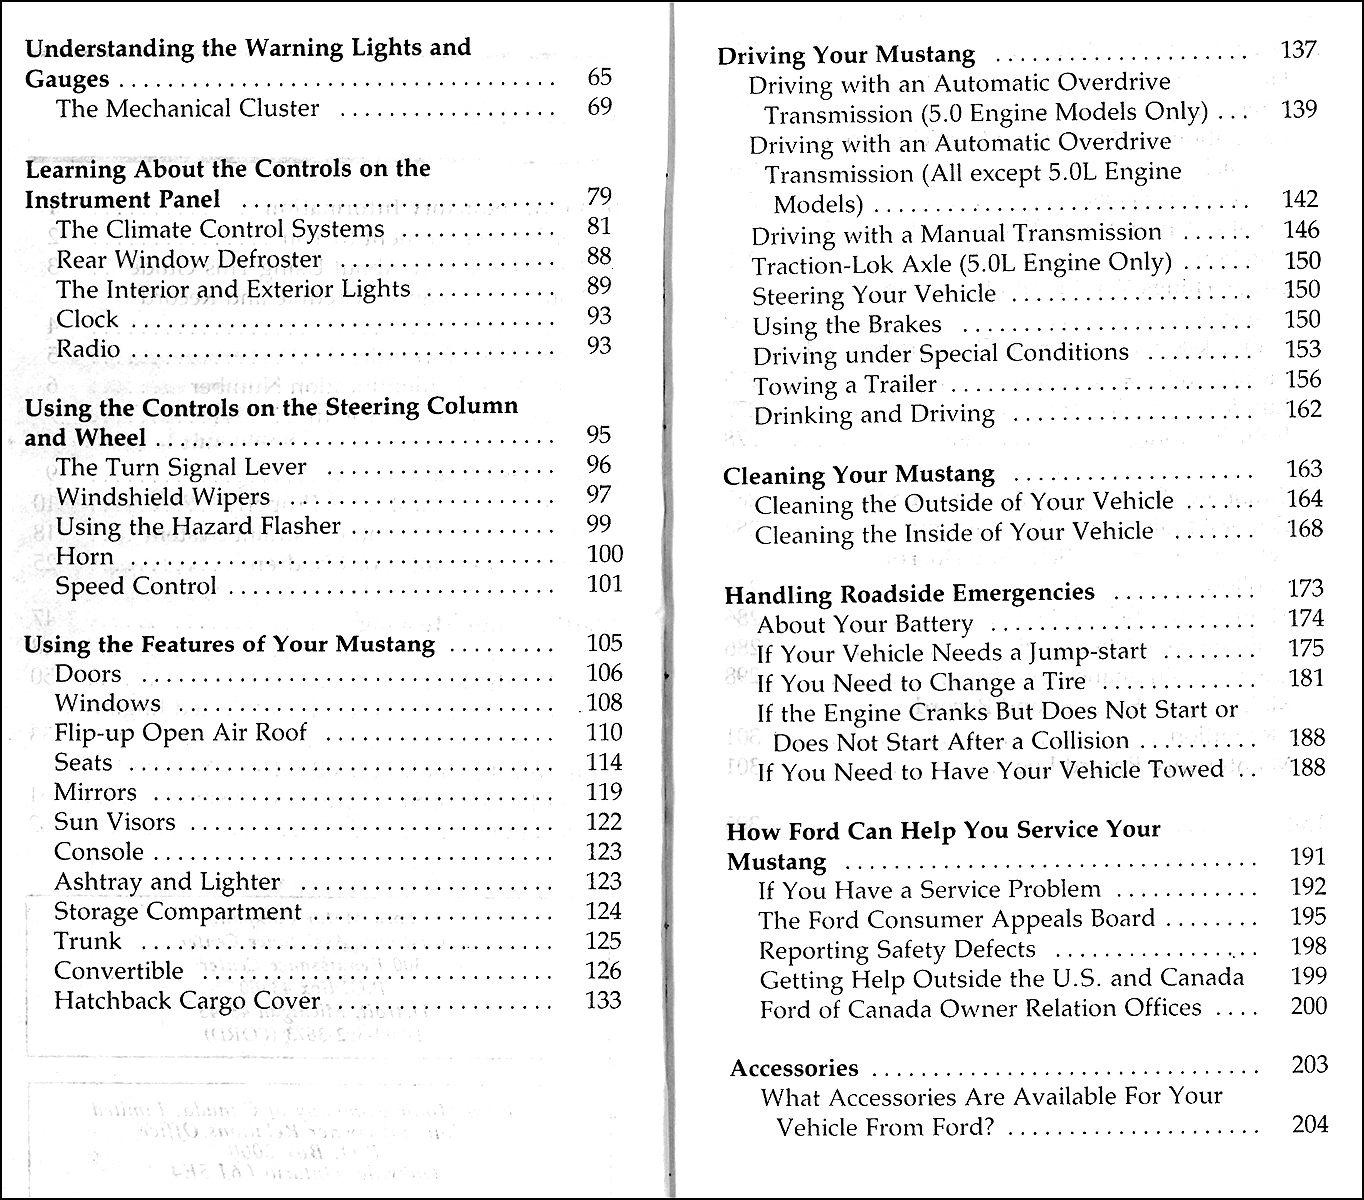 1992 Ford Mustang Owners Manual Original Package · Table of Contents Page 1  · Table of Contents Page 2 & 3